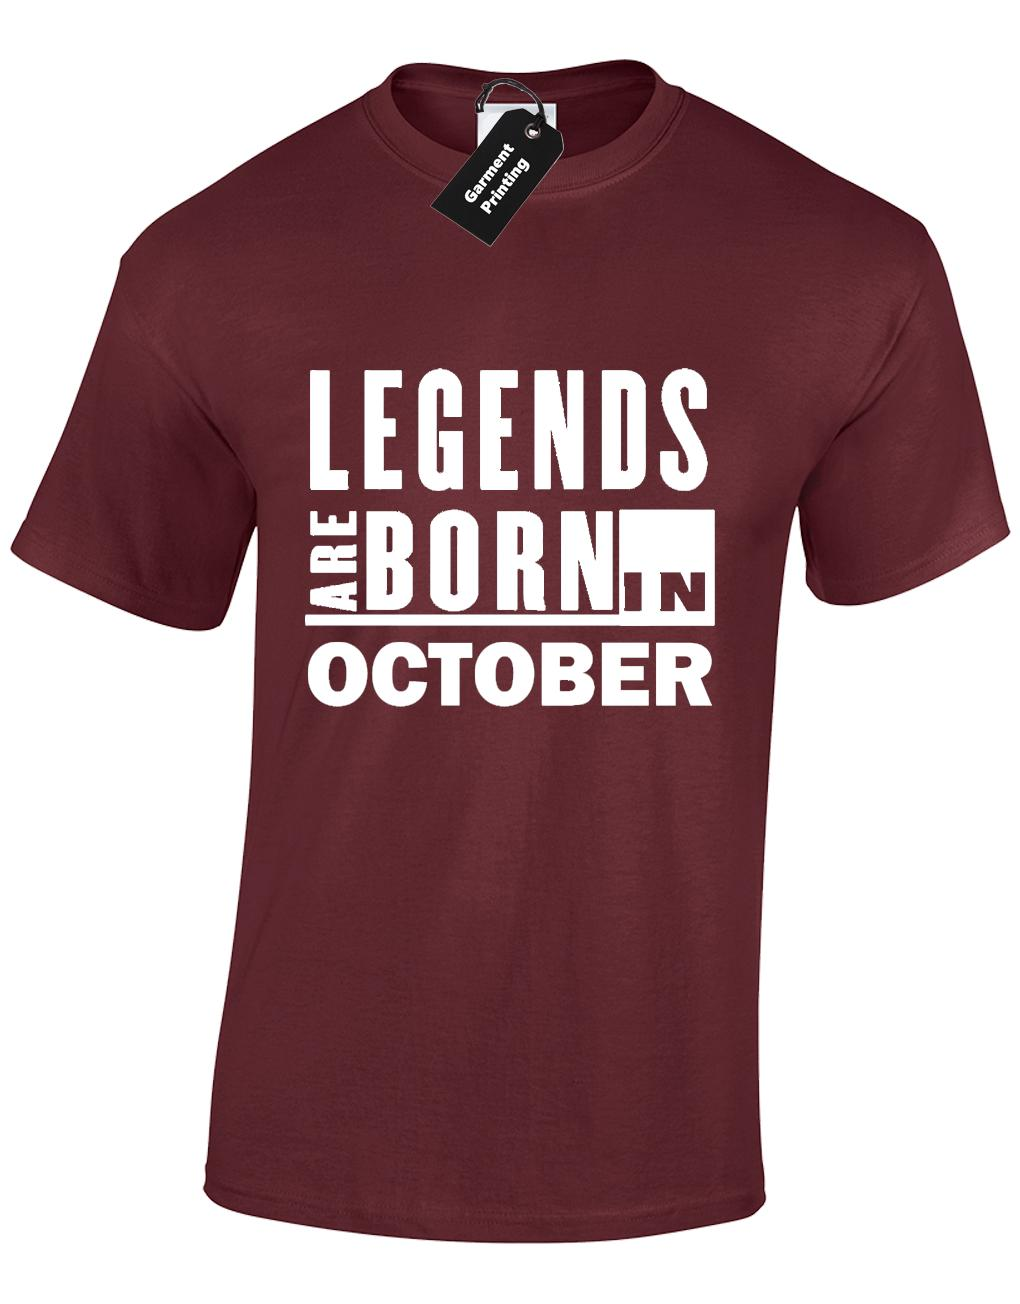 e65983b9 Details Zu LEGENDS ARE BORN IN OCTOBER MENS T SHIRT COOL FUNNY BIRTHDAY  GIFT PRESENT IDEA Funny Unisex Casual Gift T Shirt Shop Online Crazy T Shirt  From ...